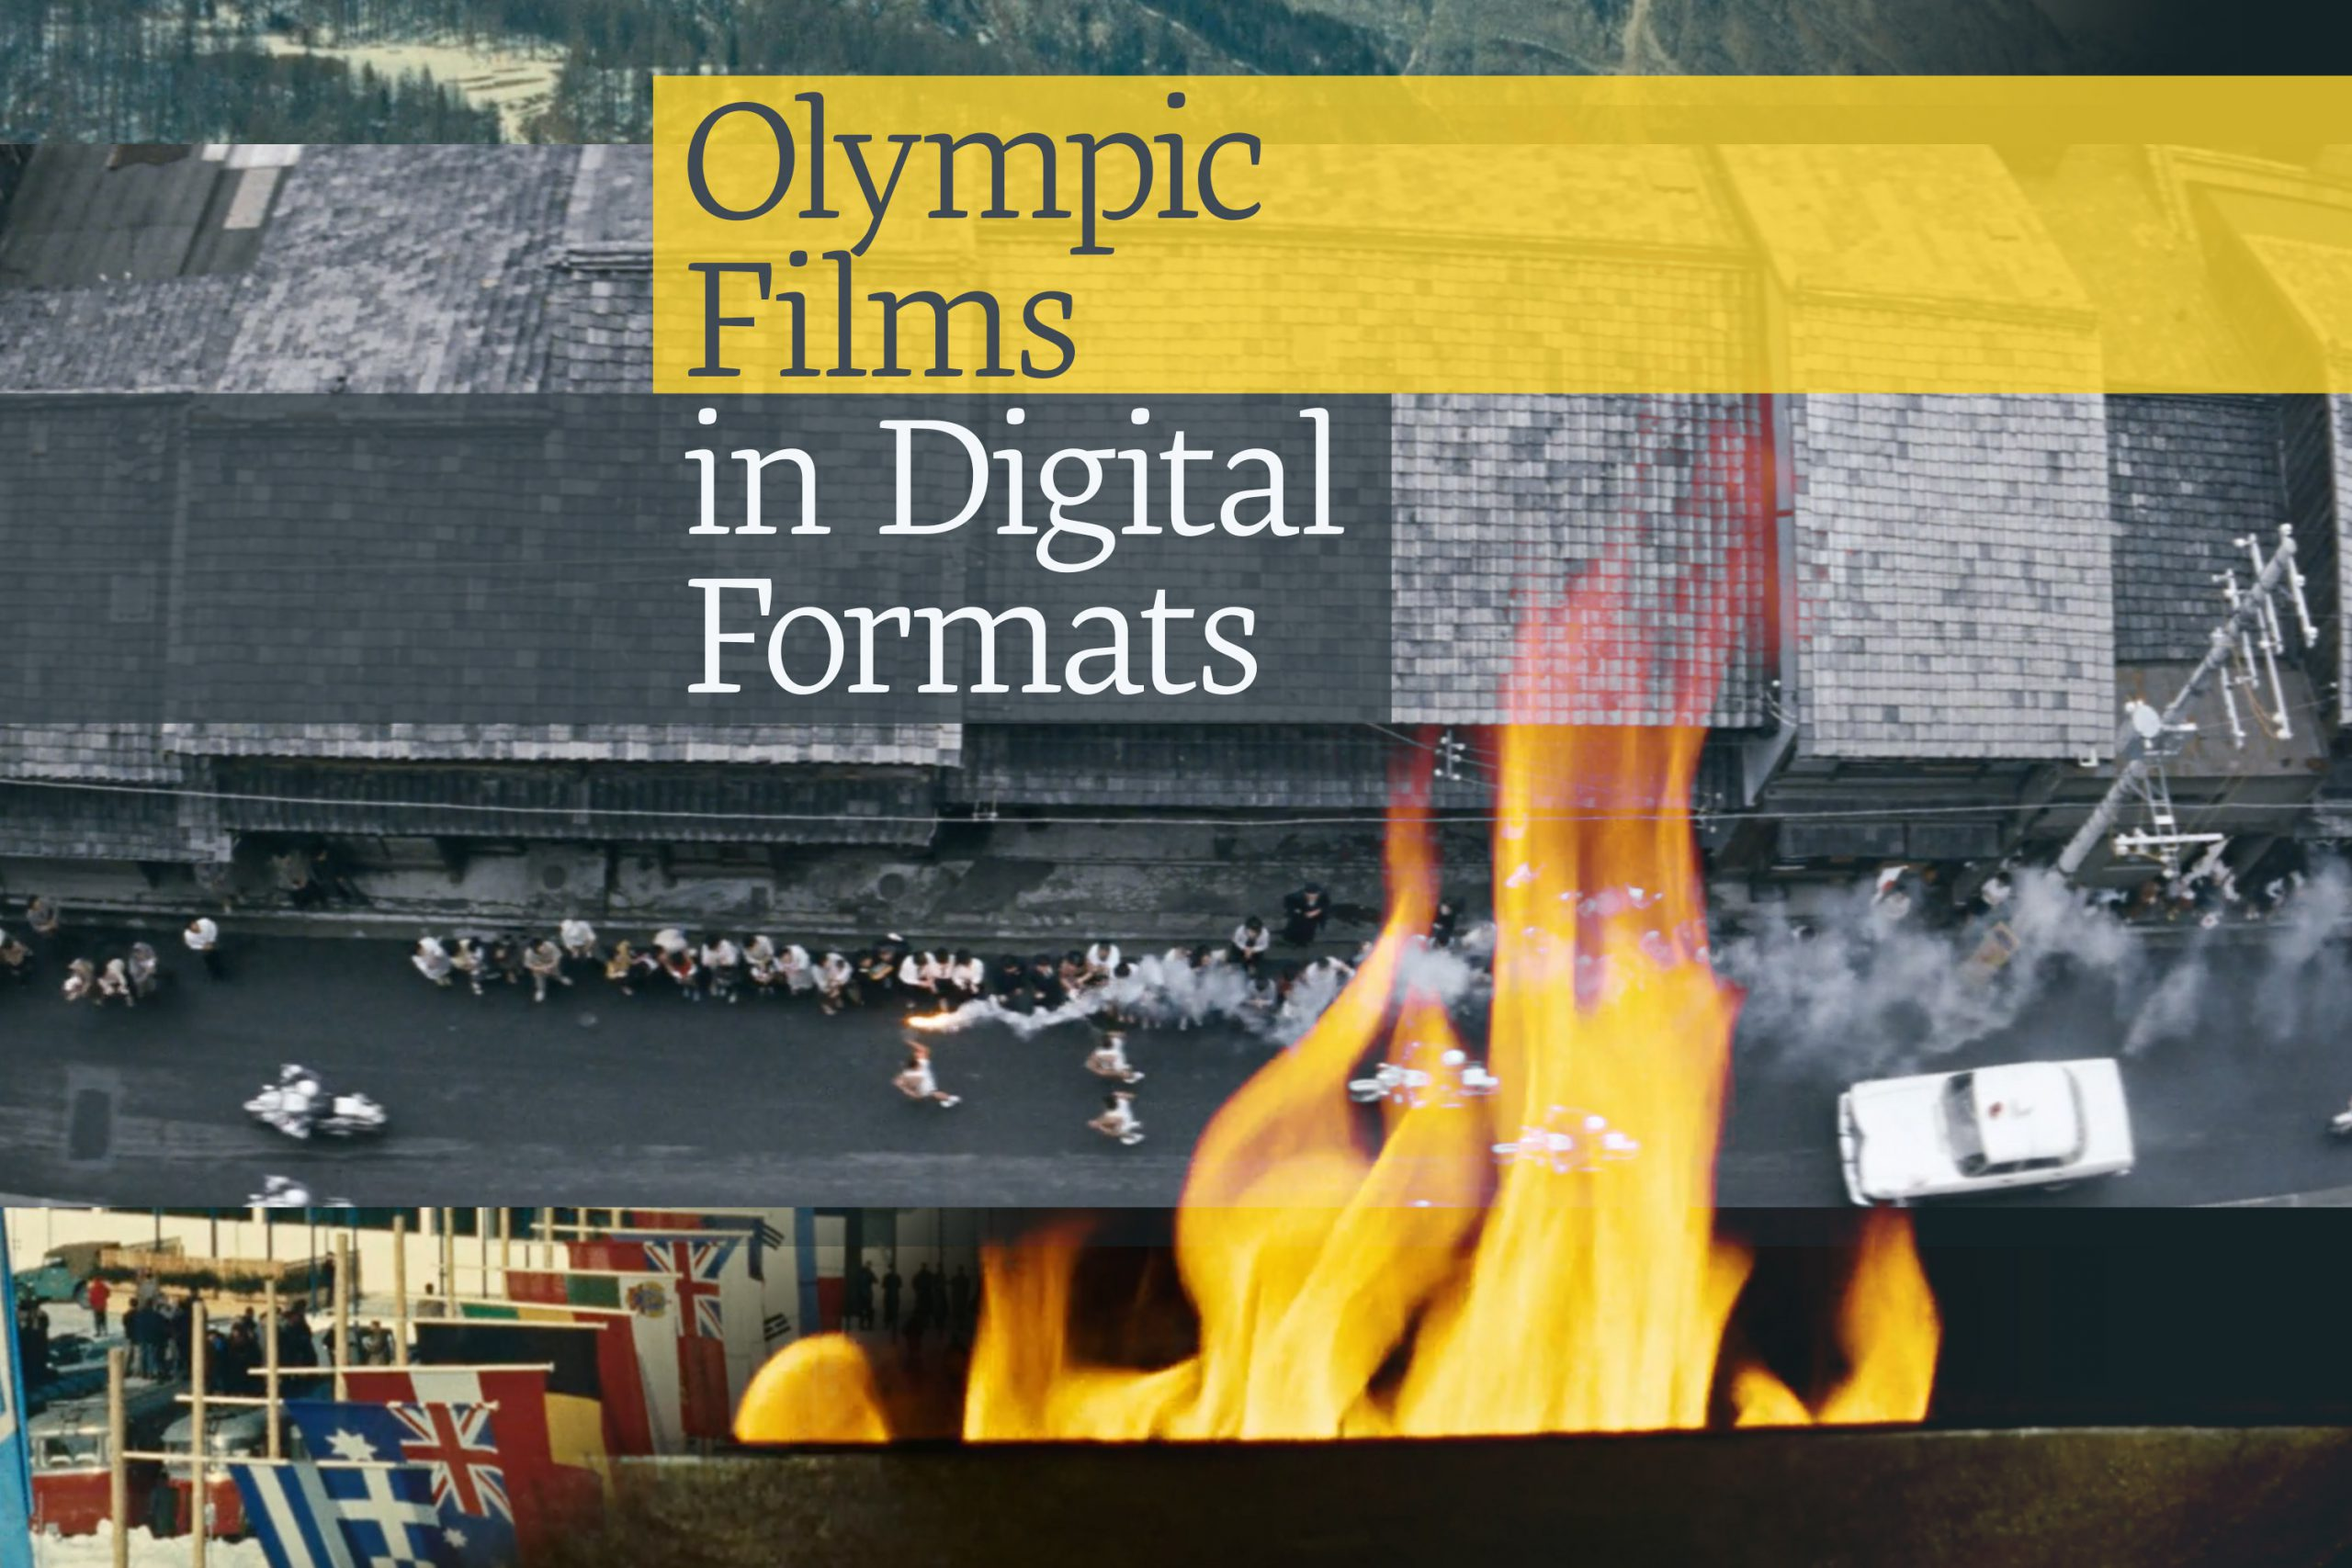 Watching Olympic Films in Digital Formats